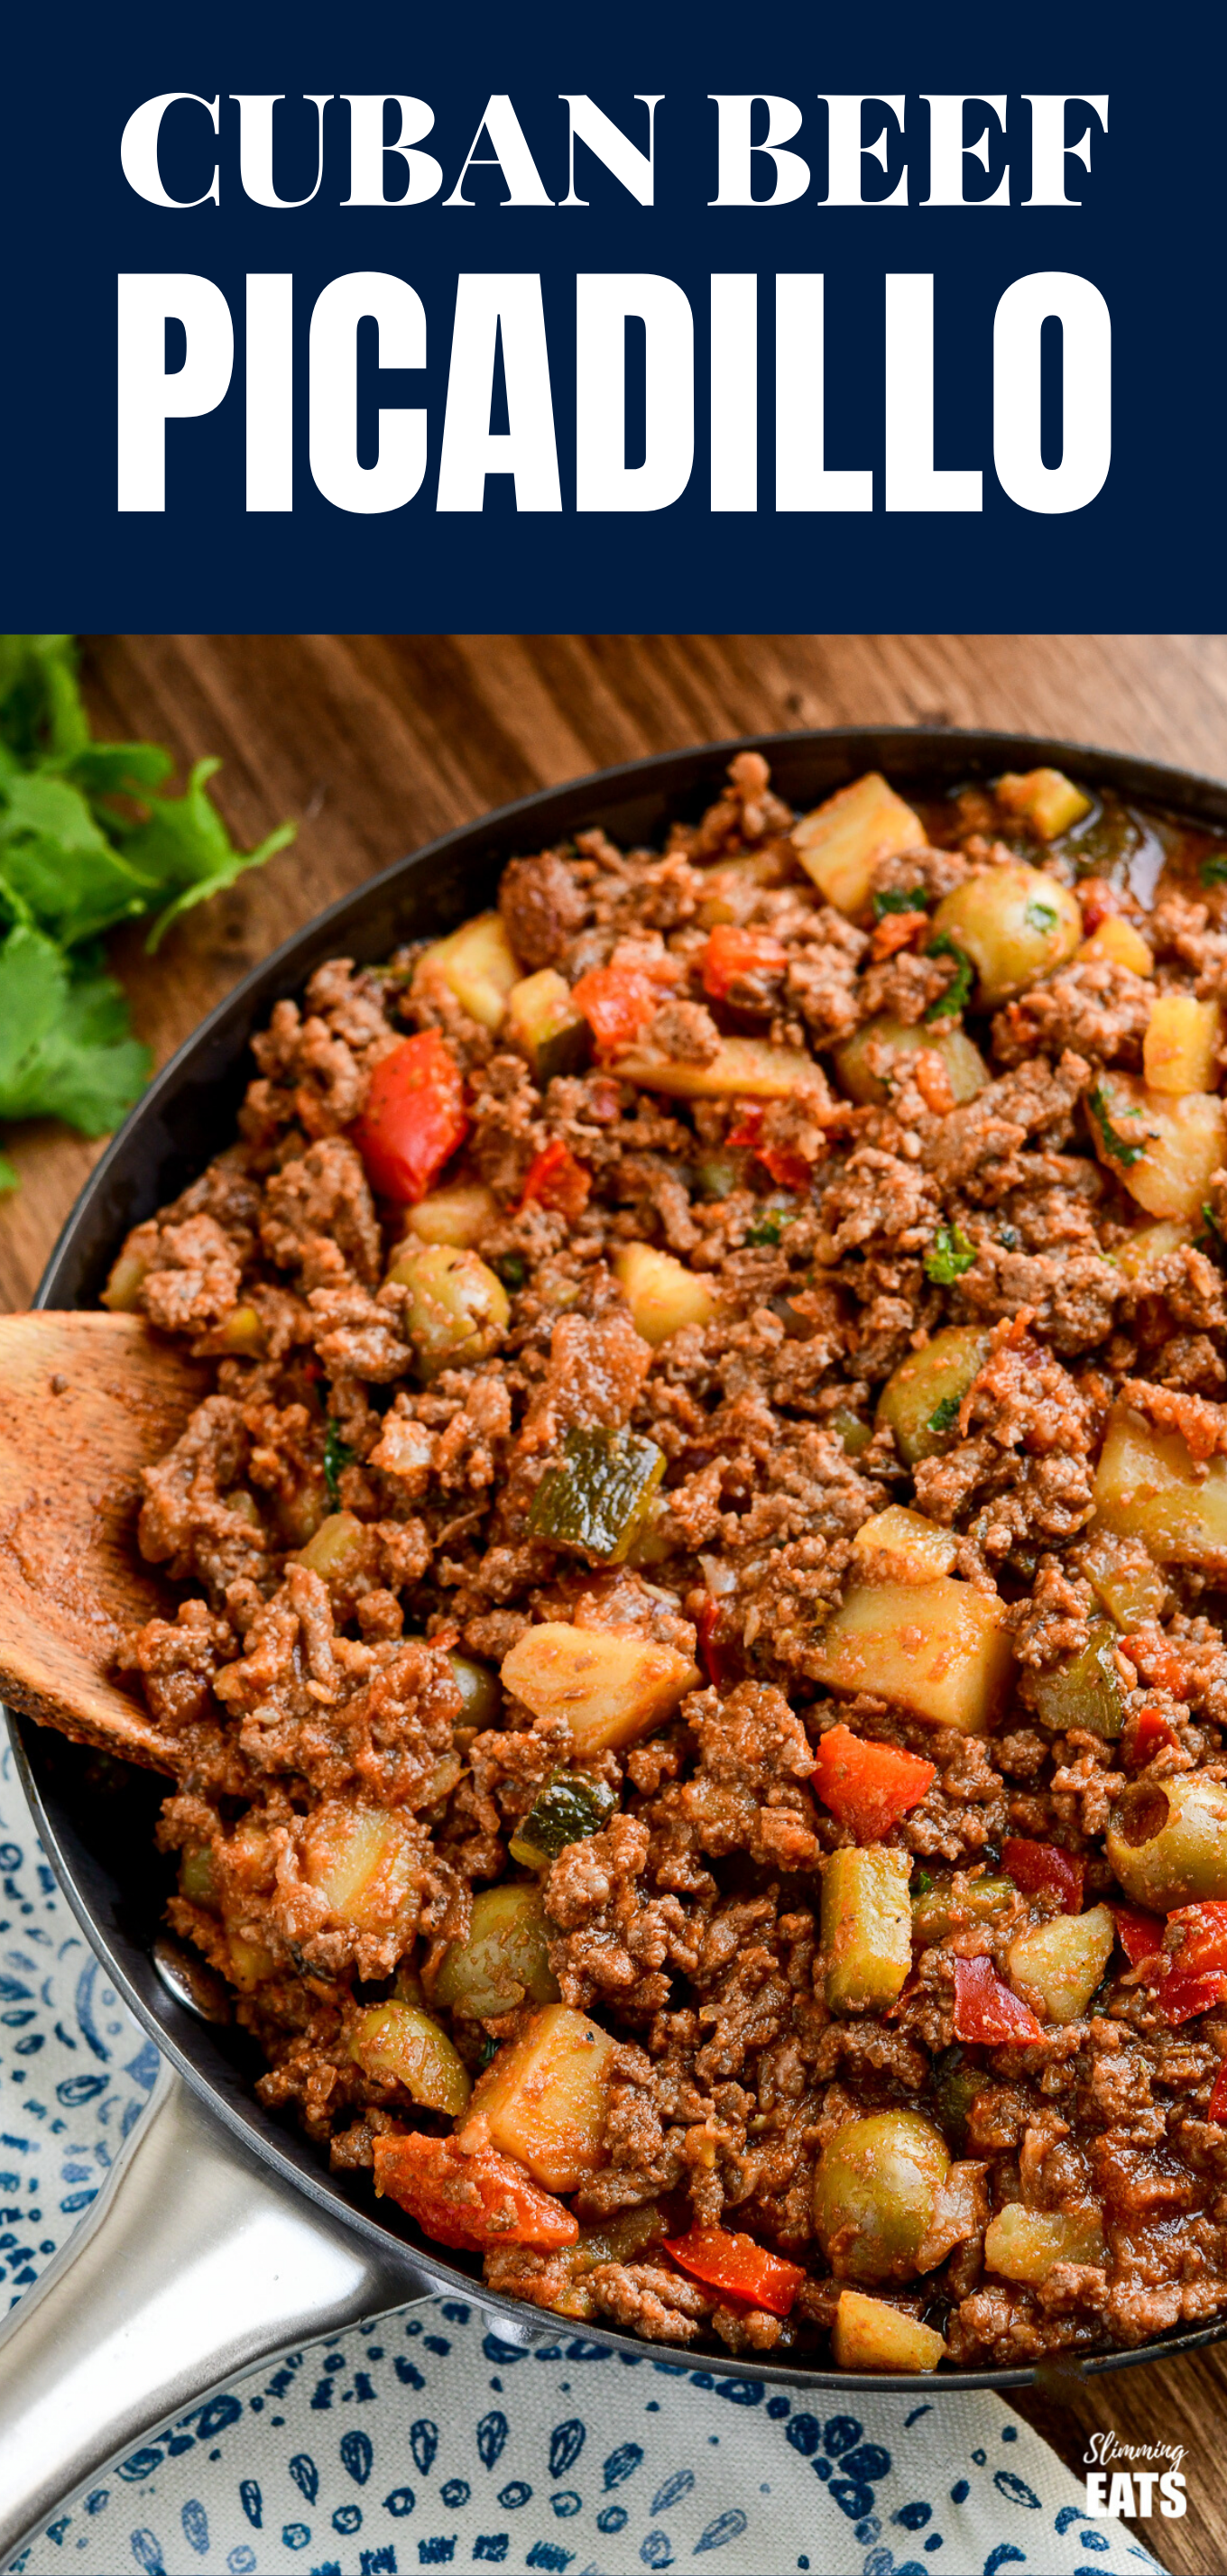 cuban beef picadillo feature pin image